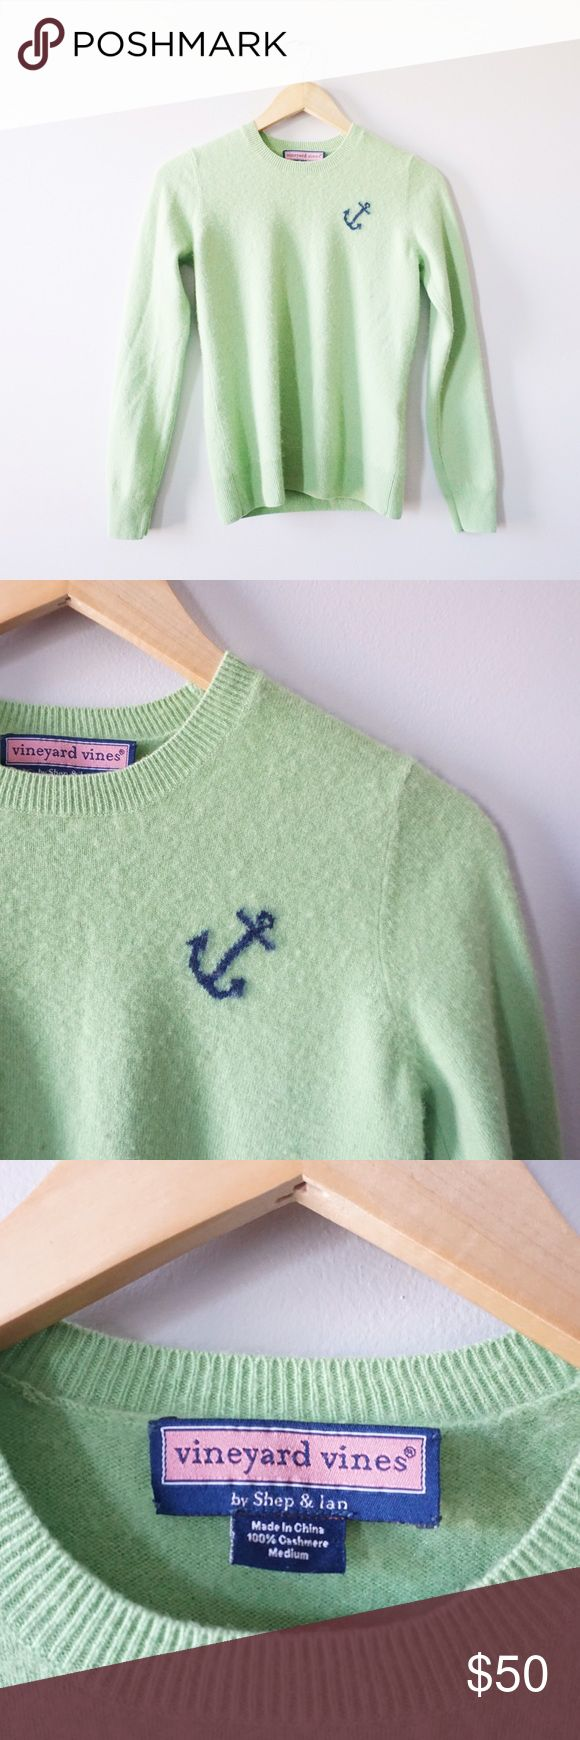 Vineyard Vines 100% Cashmere Anchor Sweater Vineyard Vines 100% cashmere anchor sweater size medium. Fitted. Pilling as shown. Part of the tag is hanging off. No stains or holes that I am aware of. Open to offers! Vineyard Vines Sweaters Crew & Scoop Necks